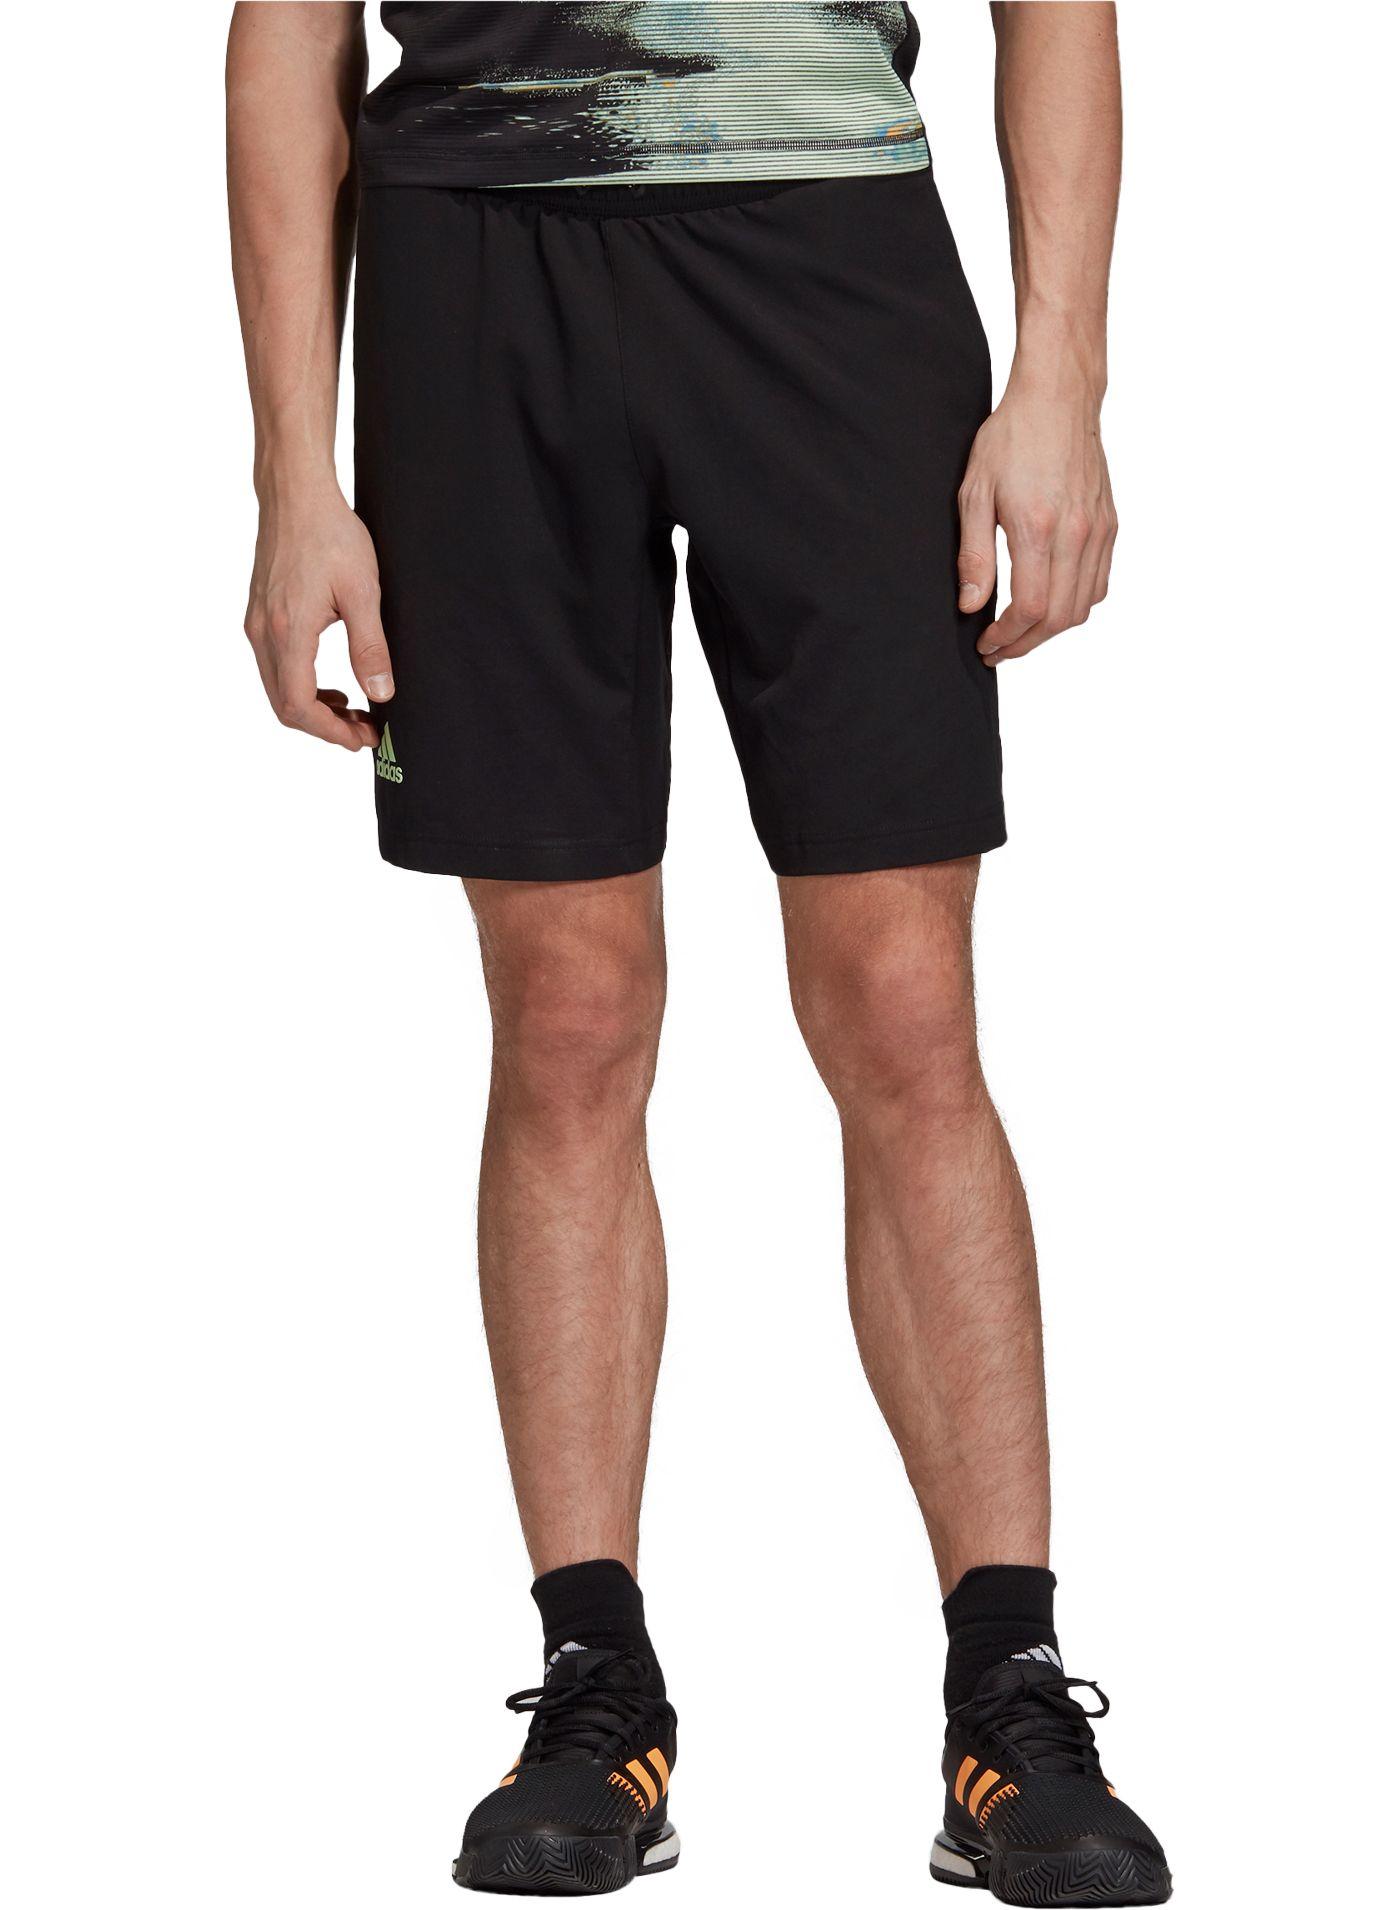 adidas Men's New York Solid Tennis Shorts